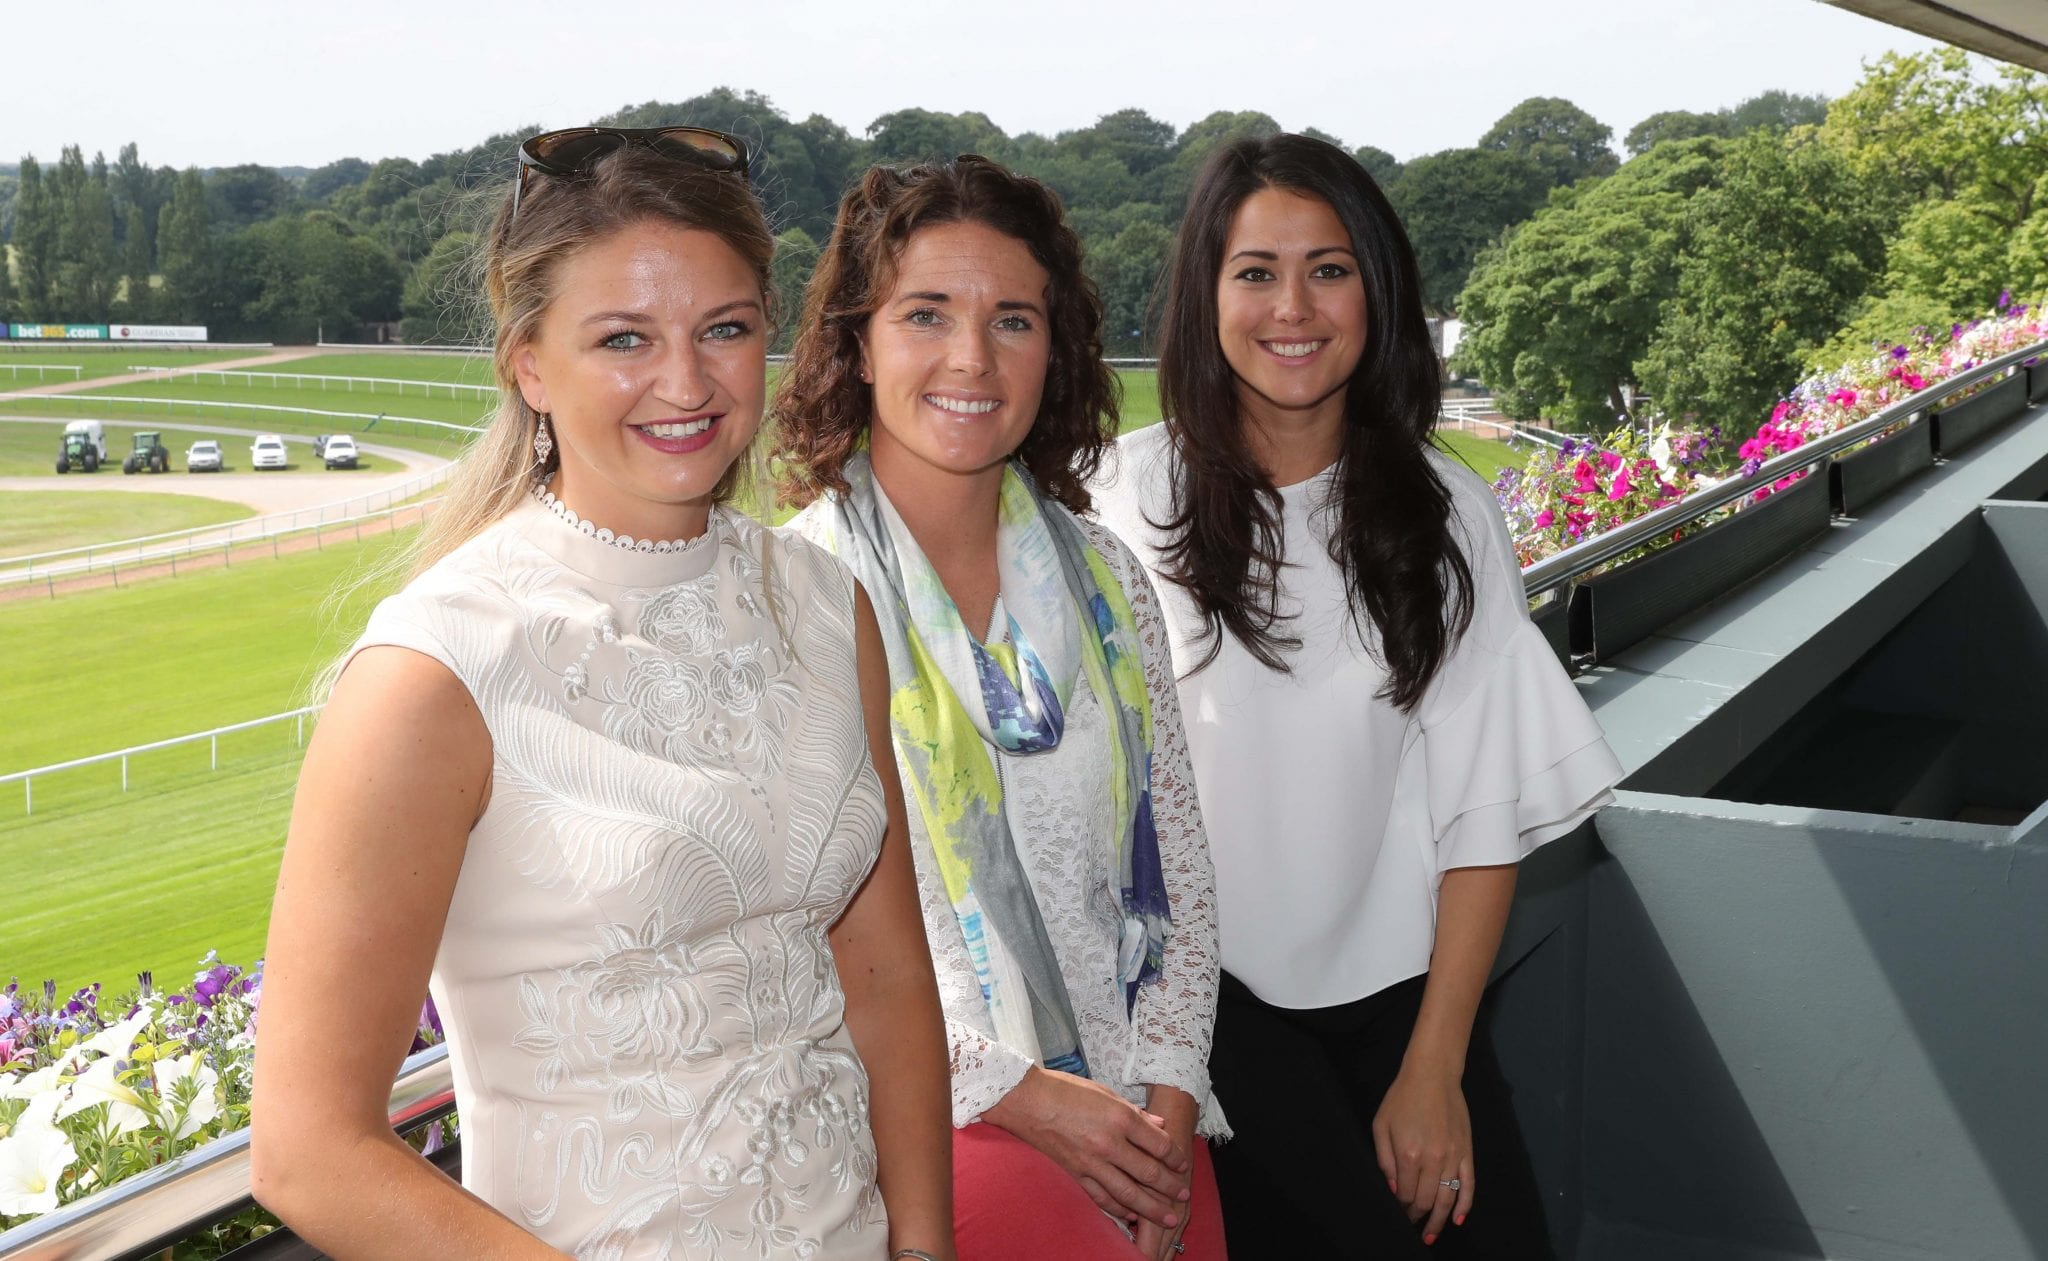 Katie Walsh Says Carlisle's #AmazingMonday Is A 'Life Changing' Prize For Women In Racing